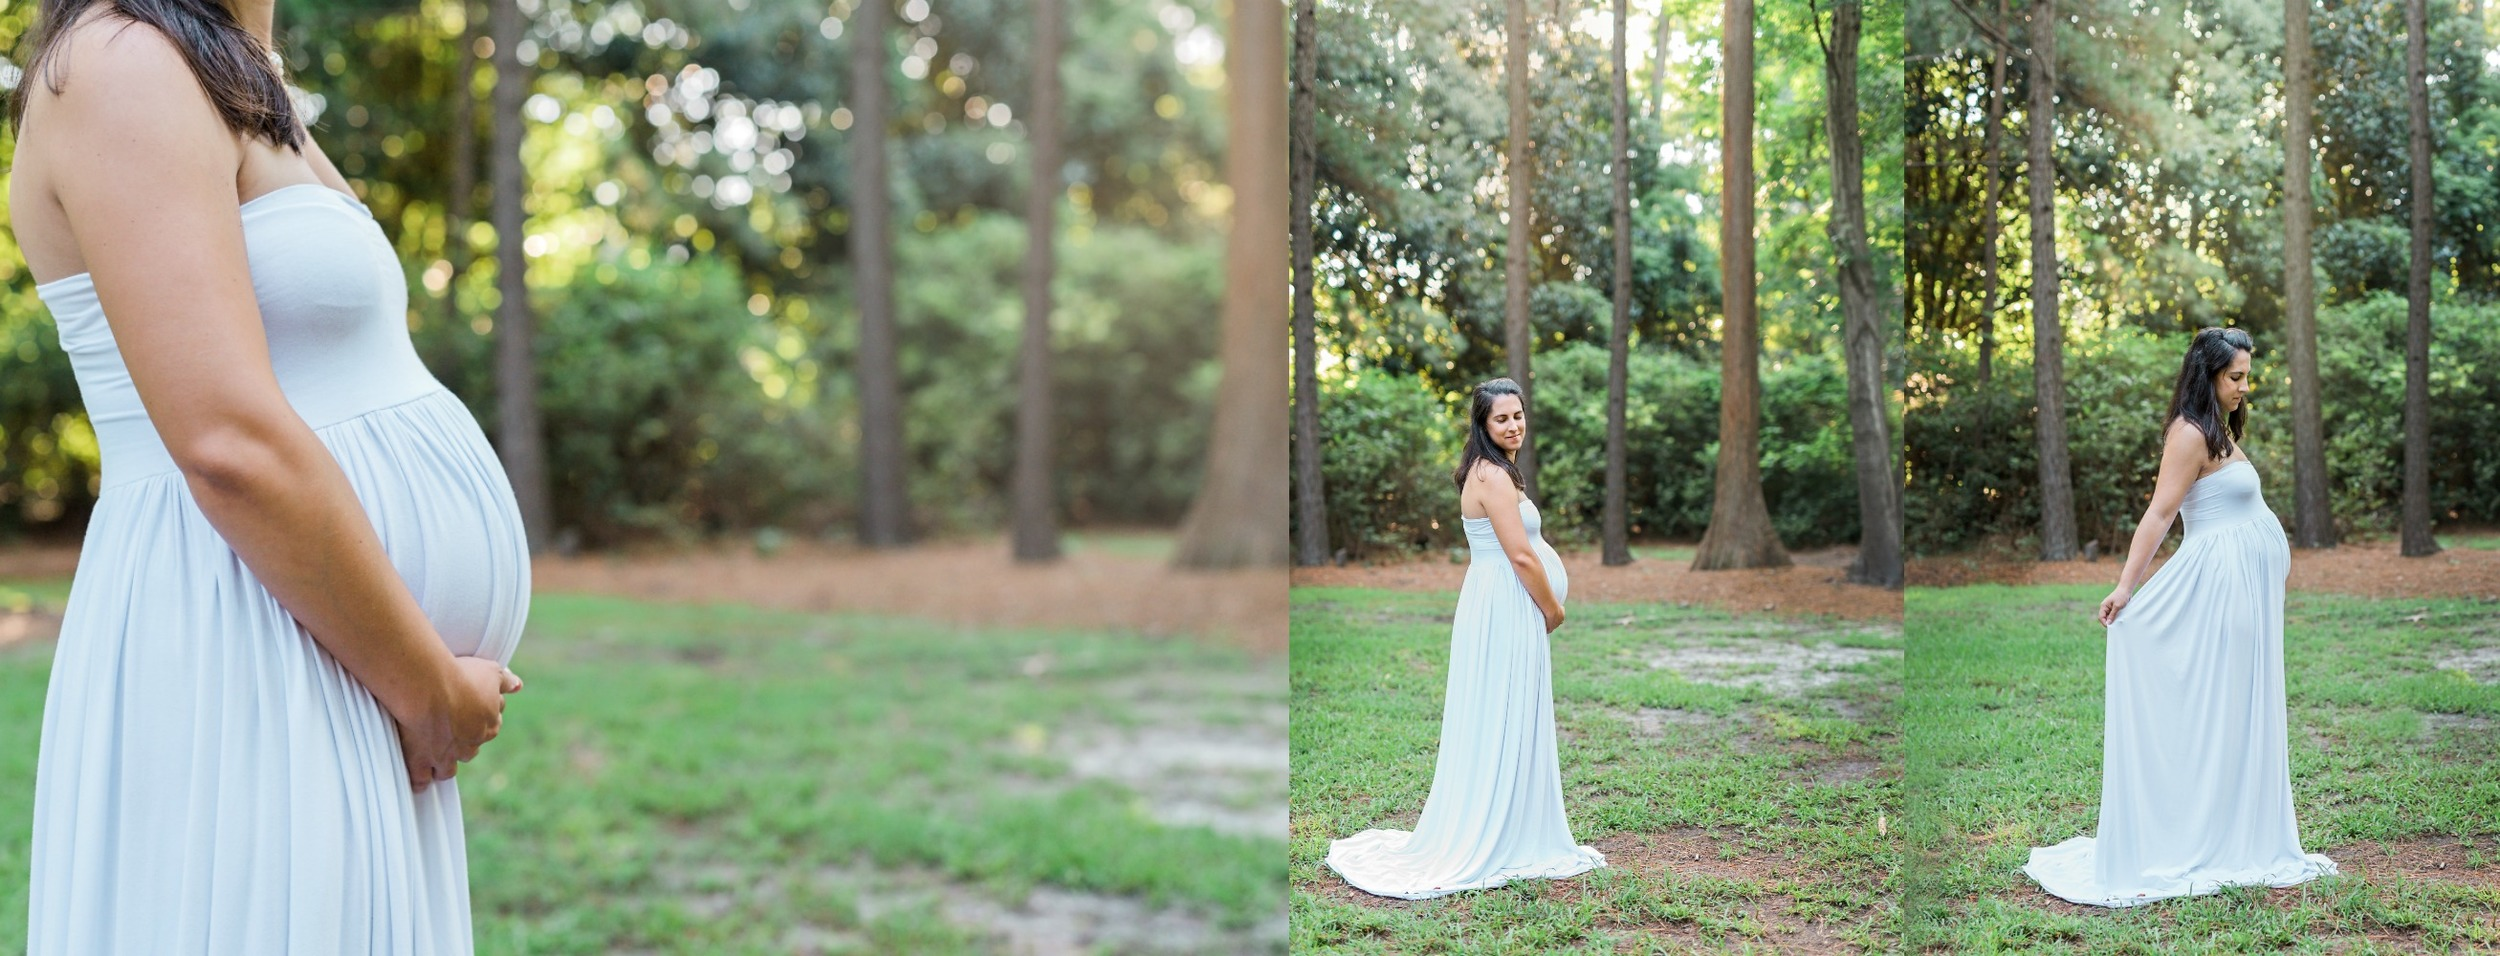 Summerville-Maternity-Photographer-2.jpg